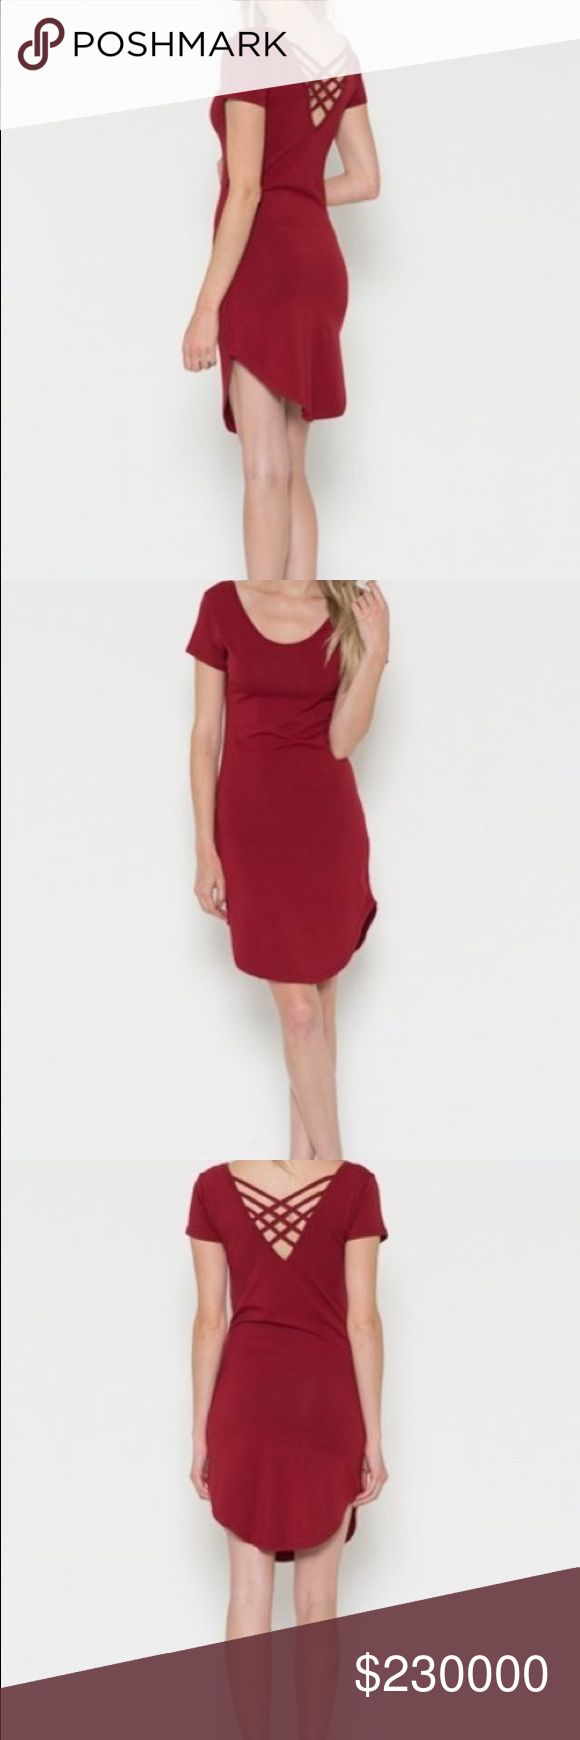 "Sexy Light wine bodycon dress 60% Cotton, 35% Rayon, 5% Spandex                            Small - length: 33"" Bust: 14""                            Medium - length: 33"" Bust: 15""                            Large - length: 35"" Bust: 16"".                                Price is firm unless you bundle Dresses Mini"